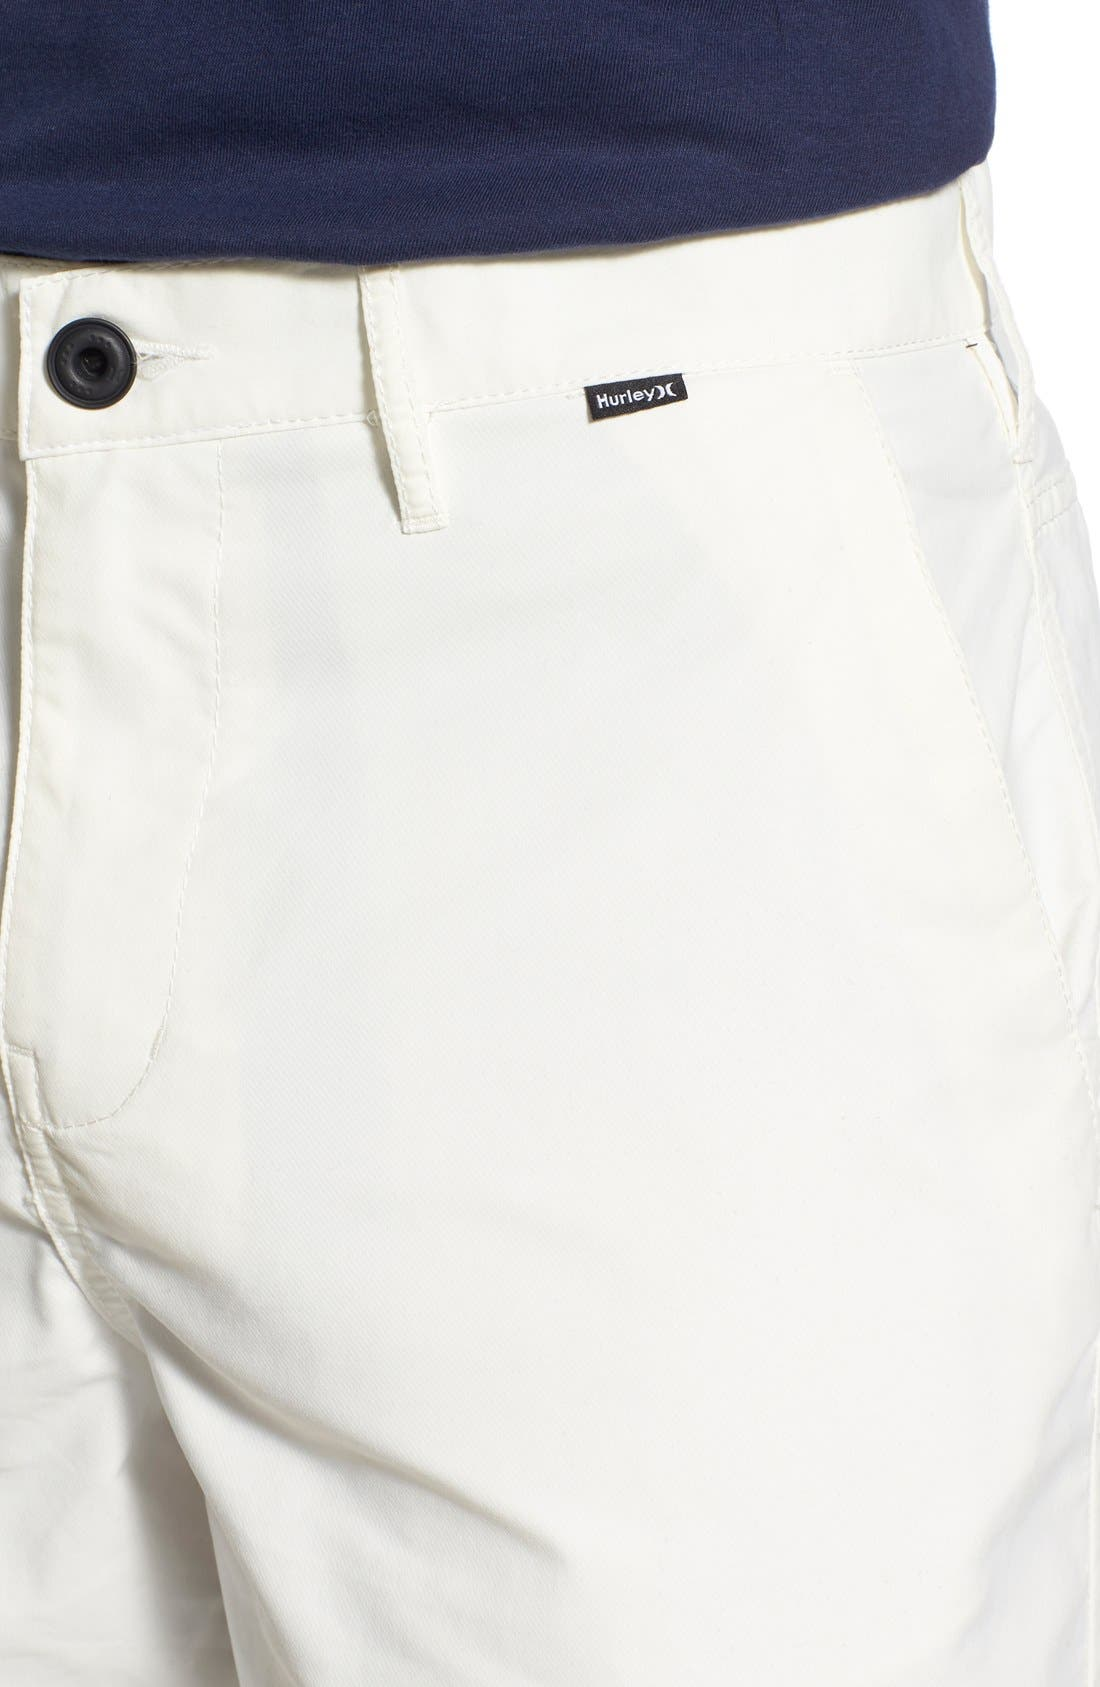 'Dry Out' Dri-FIT<sup>™</sup> Chino Shorts,                             Alternate thumbnail 70, color,